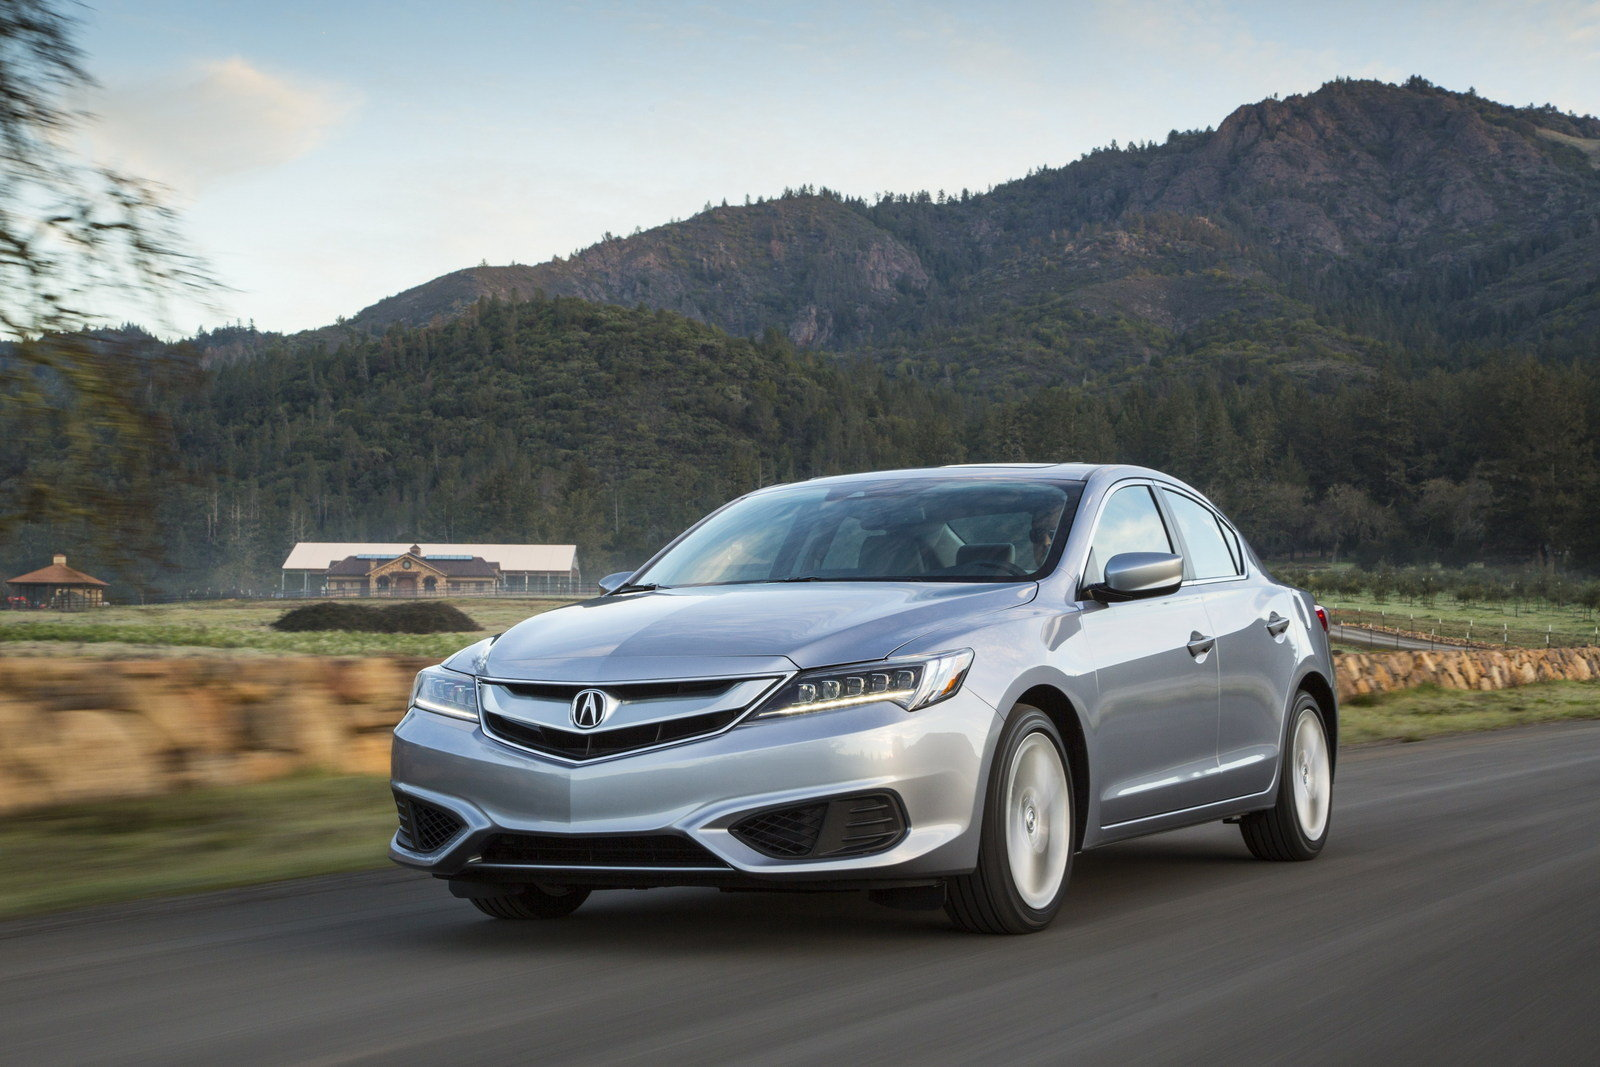 2016 2017 acura ilx picture 672432 car review top speed. Black Bedroom Furniture Sets. Home Design Ideas